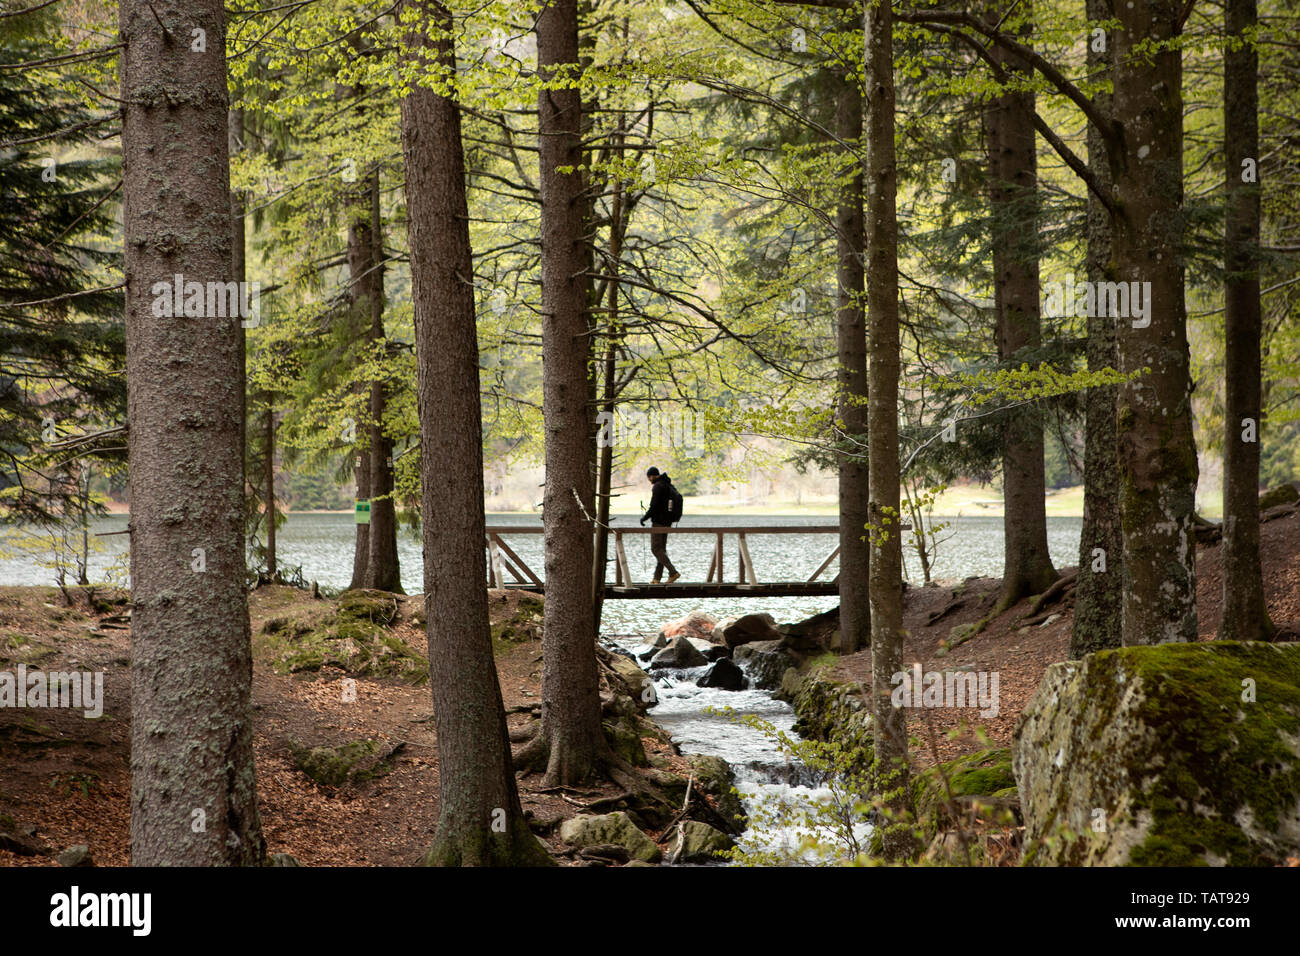 Dark silhouette of man walking through the wooden bridge in forest. Mountain lake, stream. Hiking in forest. Natur park hiking trail. Black Forest. - Stock Image